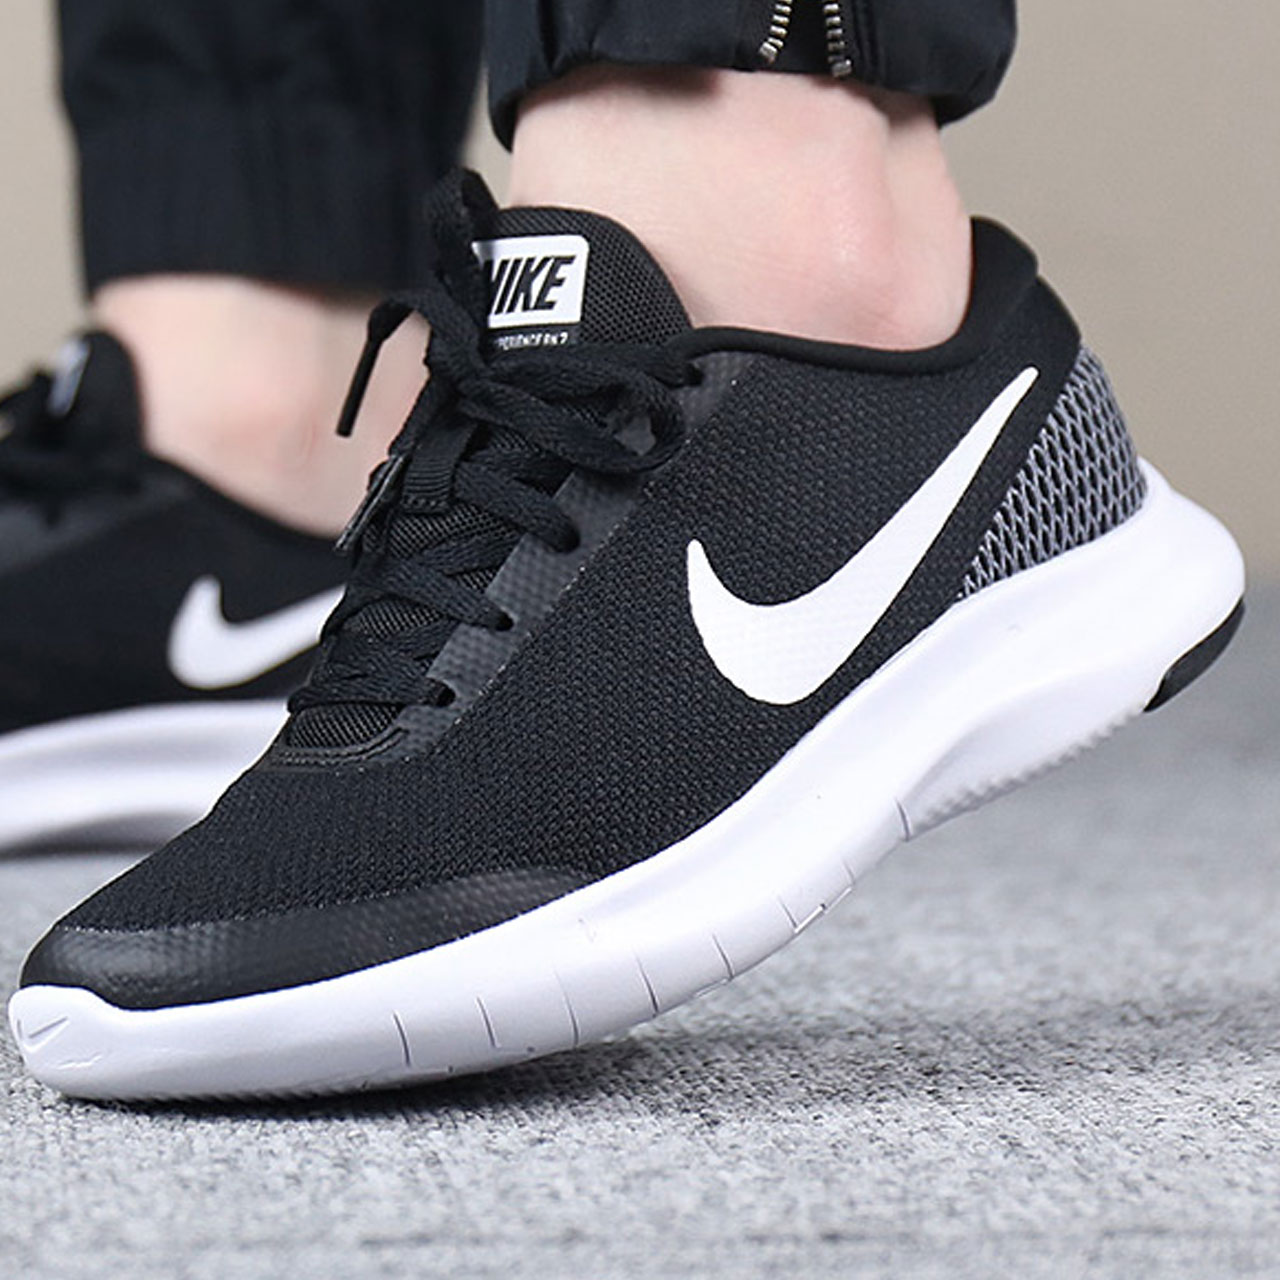 bas prix c1c58 bef89 NIKE Nike running shoes women's shoes 2018 autumn new sports shoes  lightweight breathable mesh casual shoes running shoes